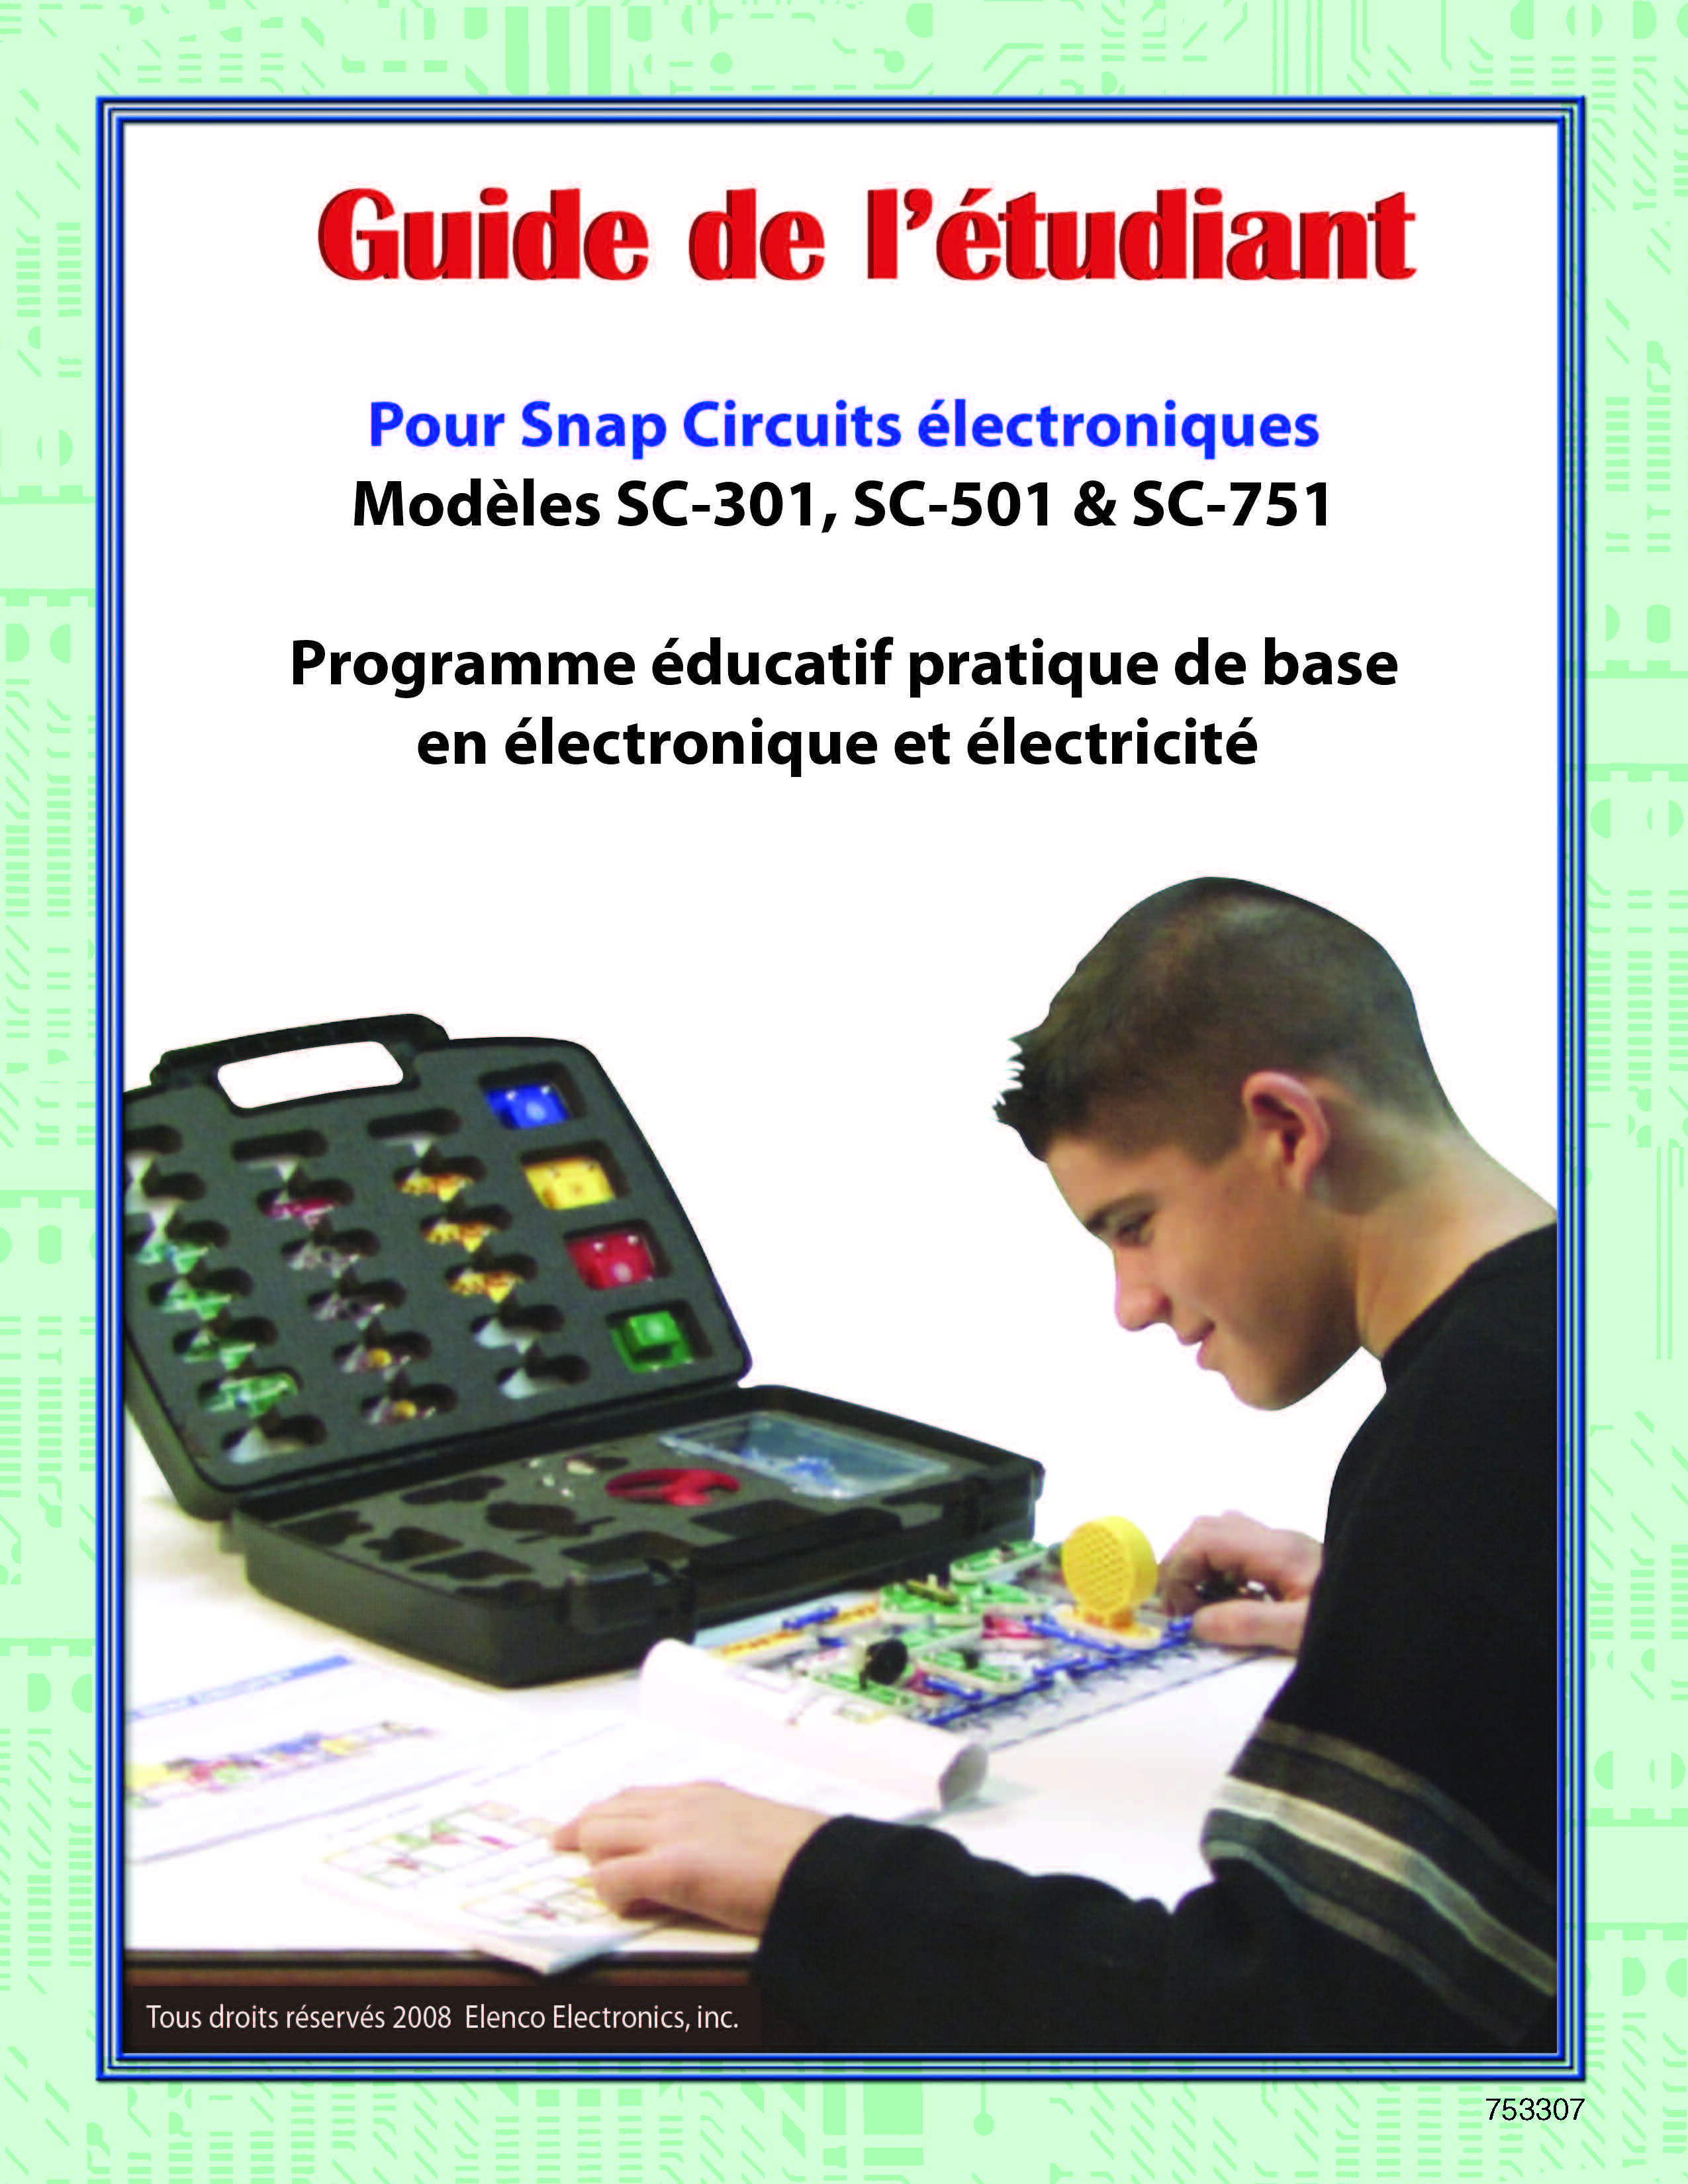 Snap Circuits Electricity Kits Buy Online Elenco Electronics Lights Pedagogical Guides